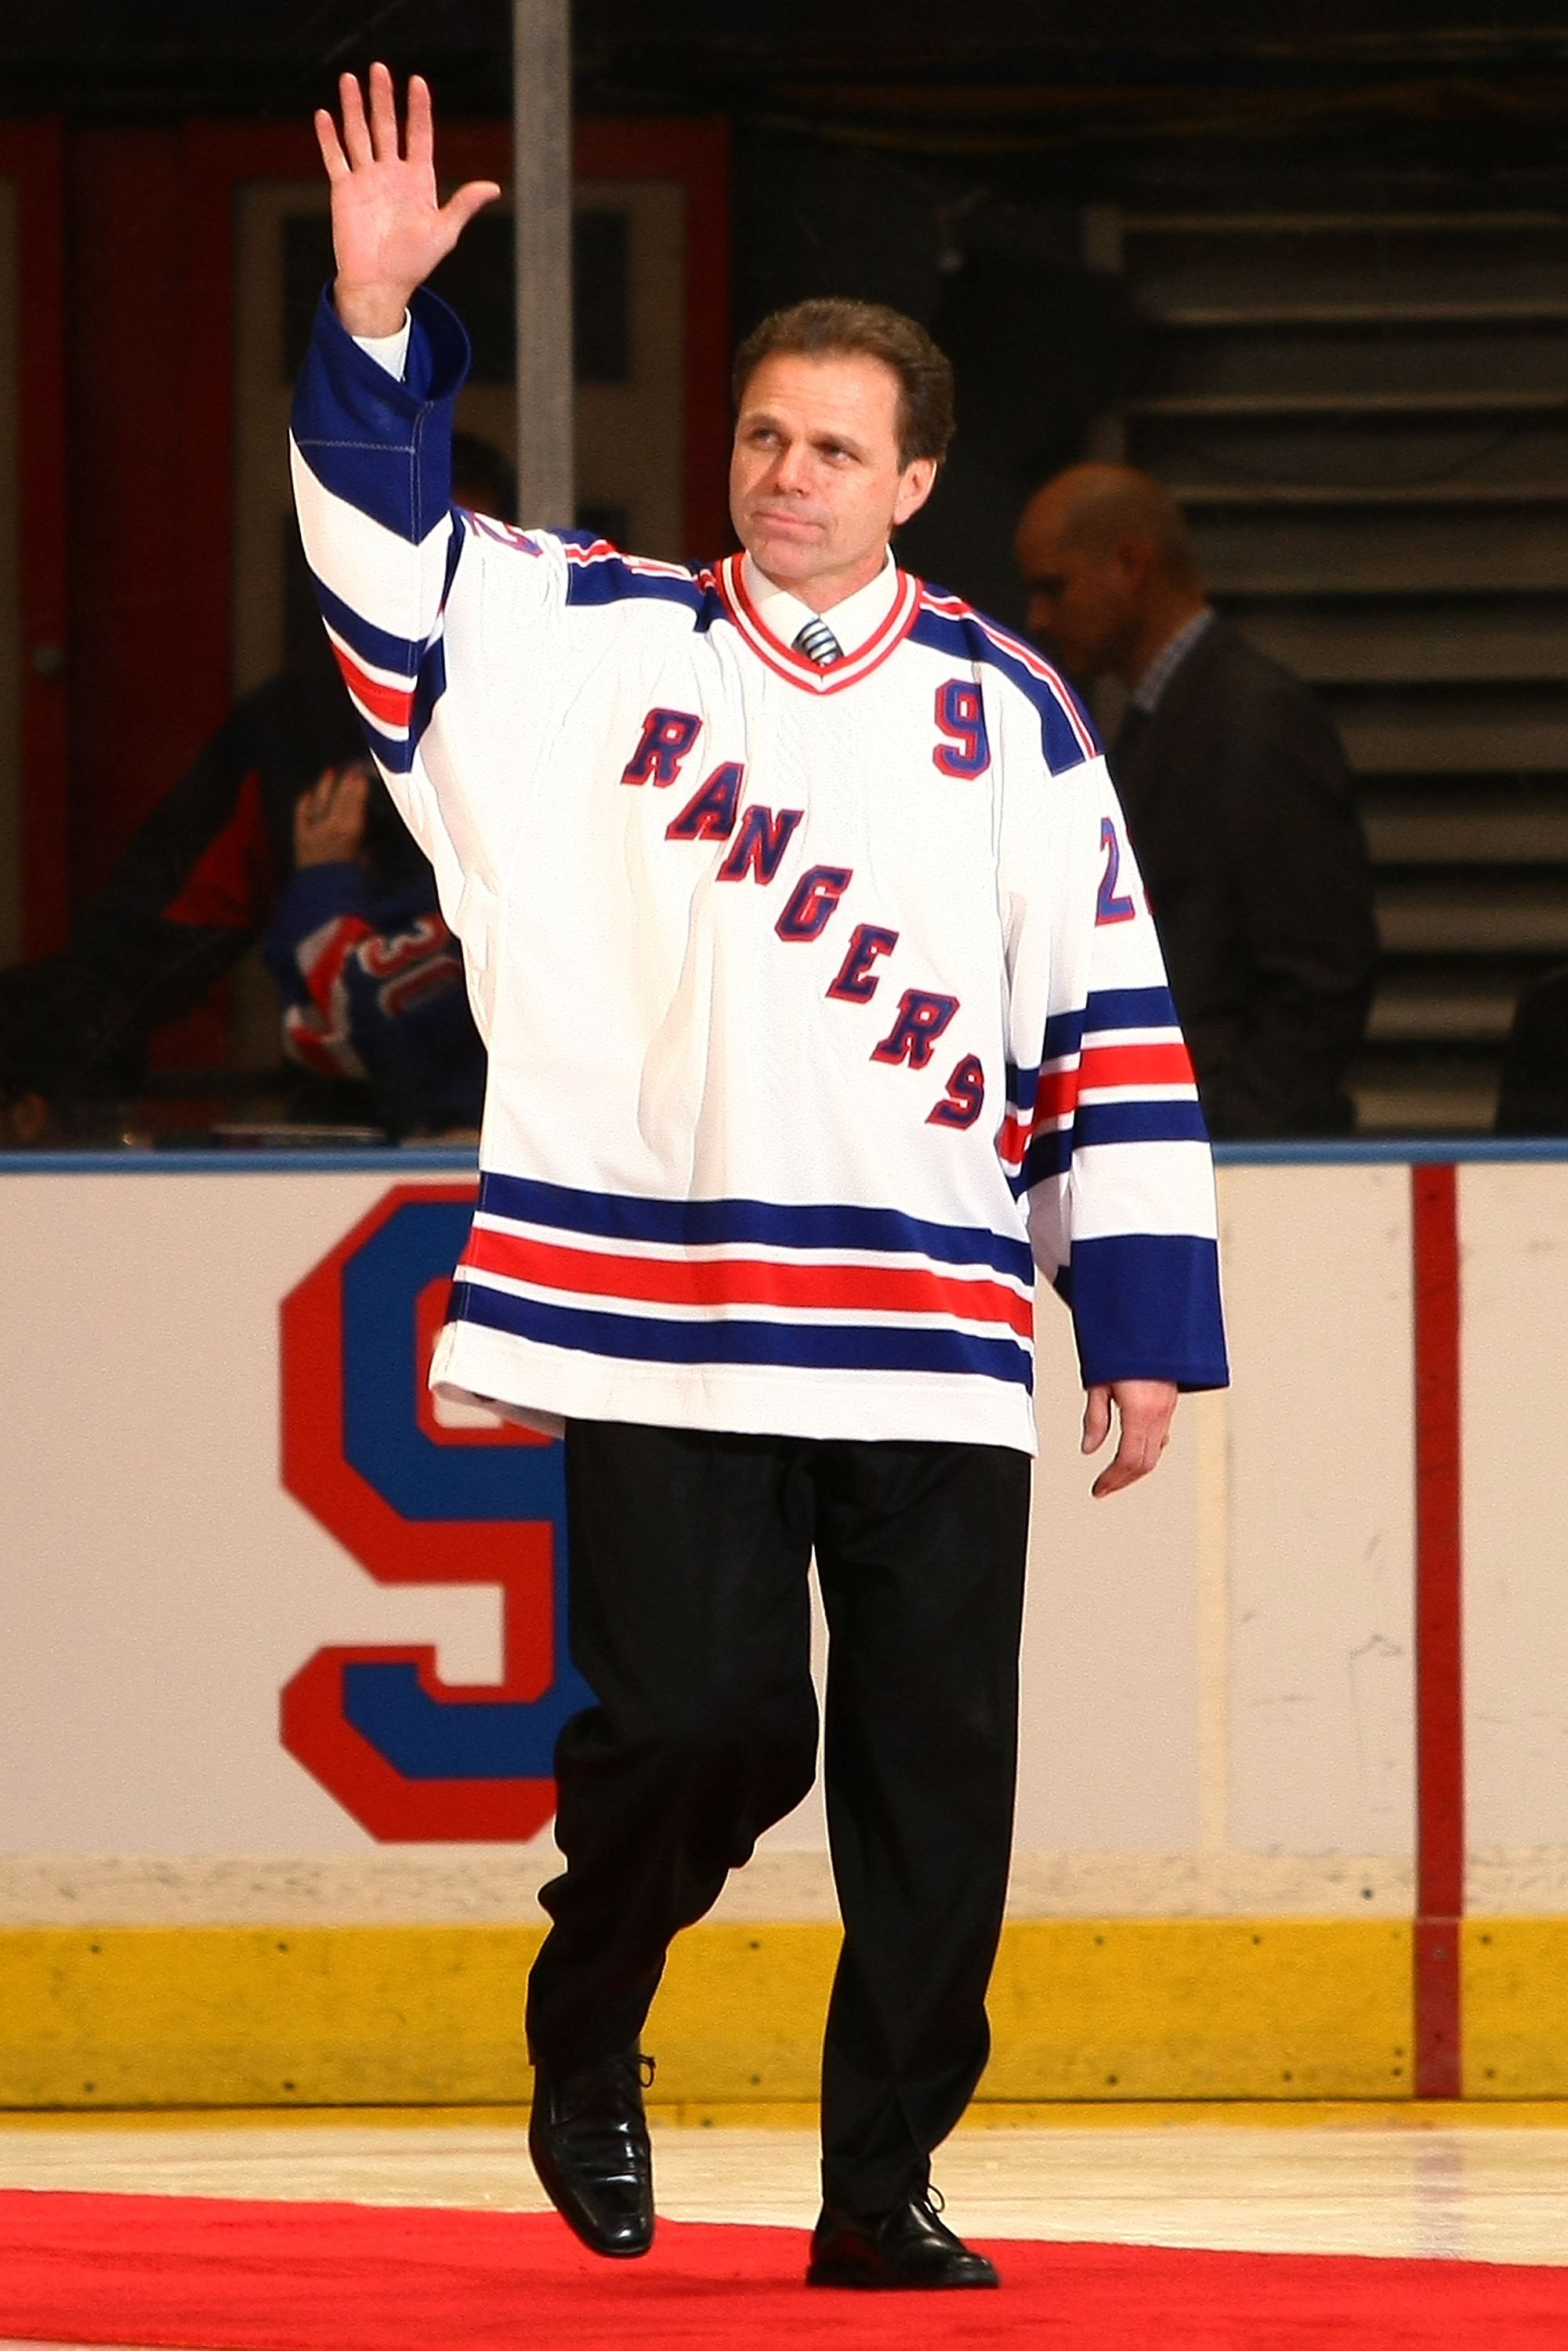 a9a21b837 NEW YORK - FEBRUARY 03  Former New York Rangers player Mike Gartner walks  onto the